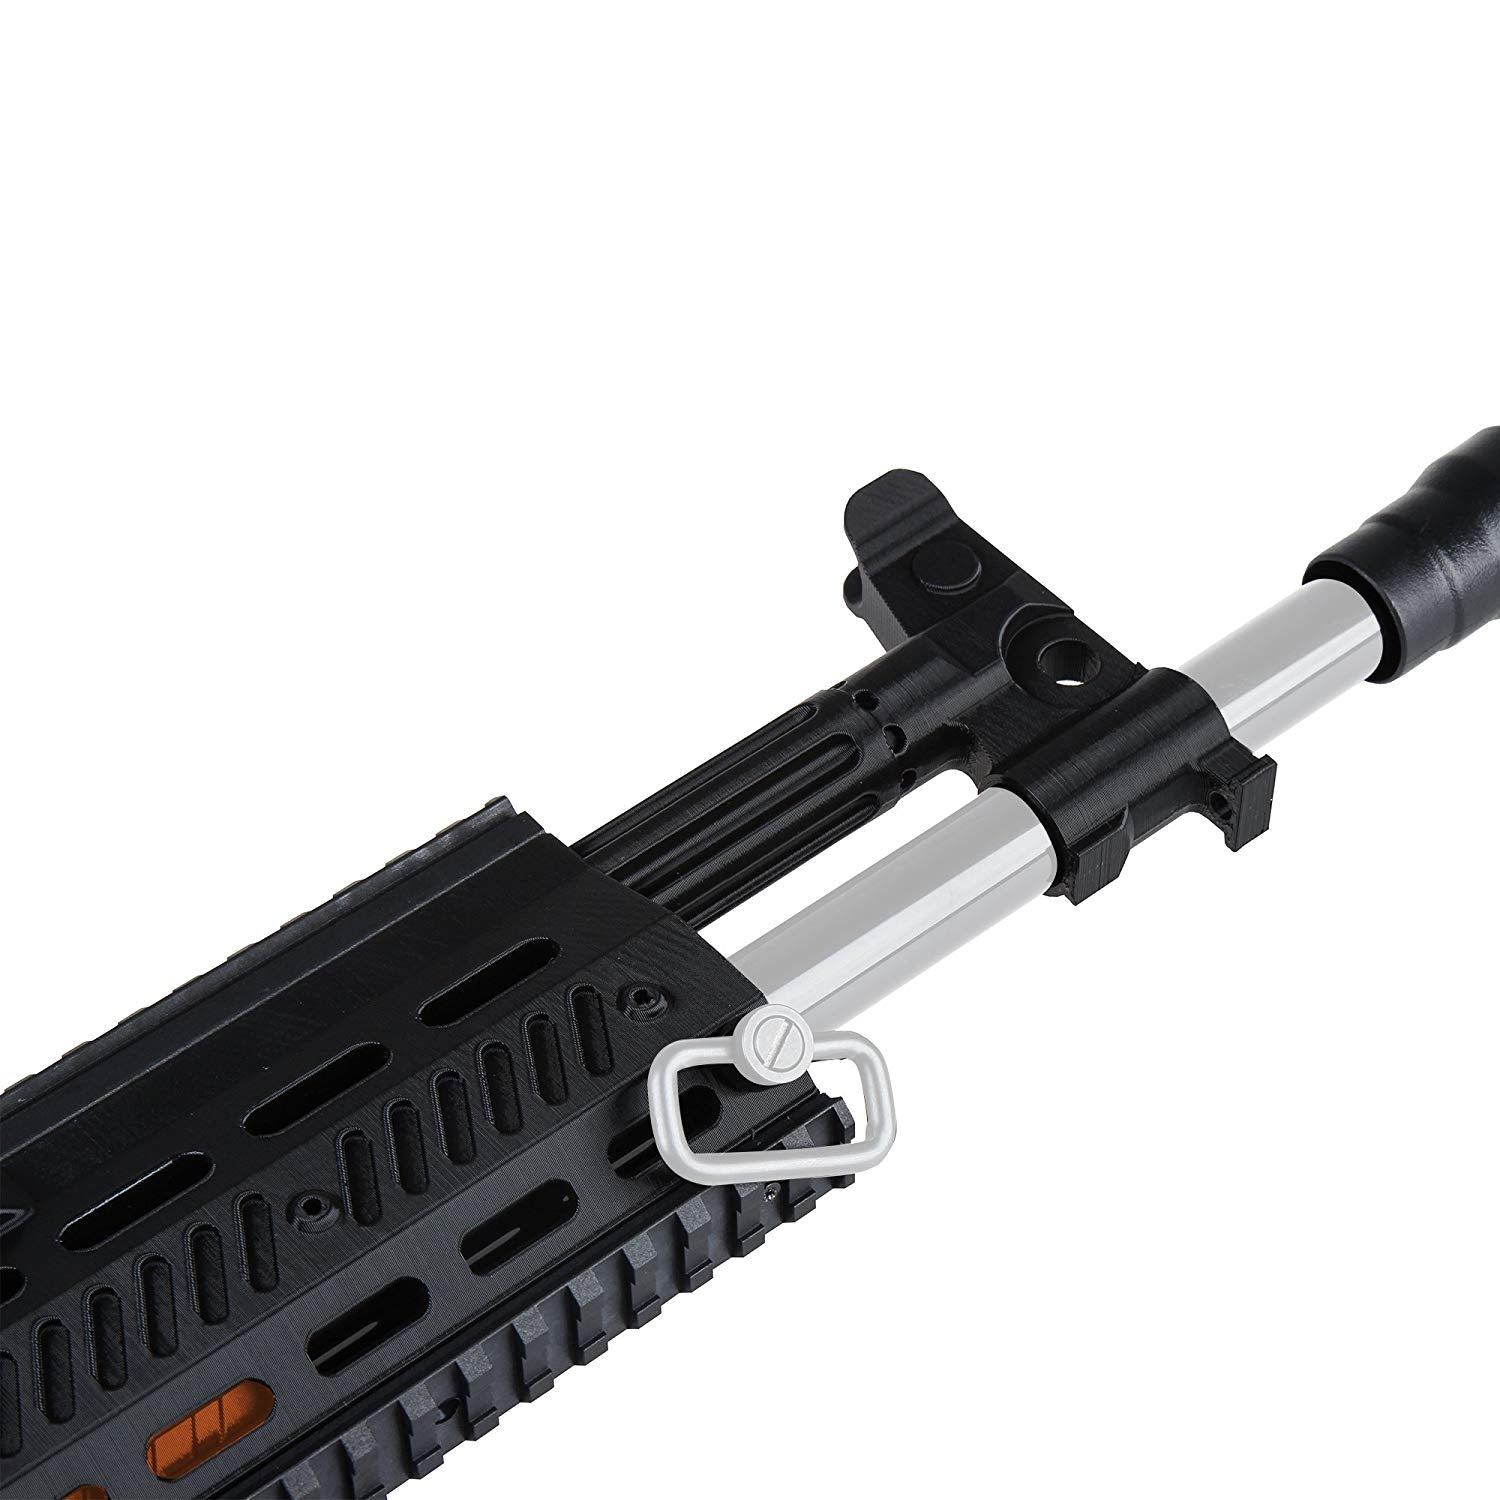 JGCWorker F10555 No.153 3D Printing AK12 Front Tube without Adaptor for Nerf N-Strike Stryfe Color Black - Nerf Mod Kits -Worker Mod Kits